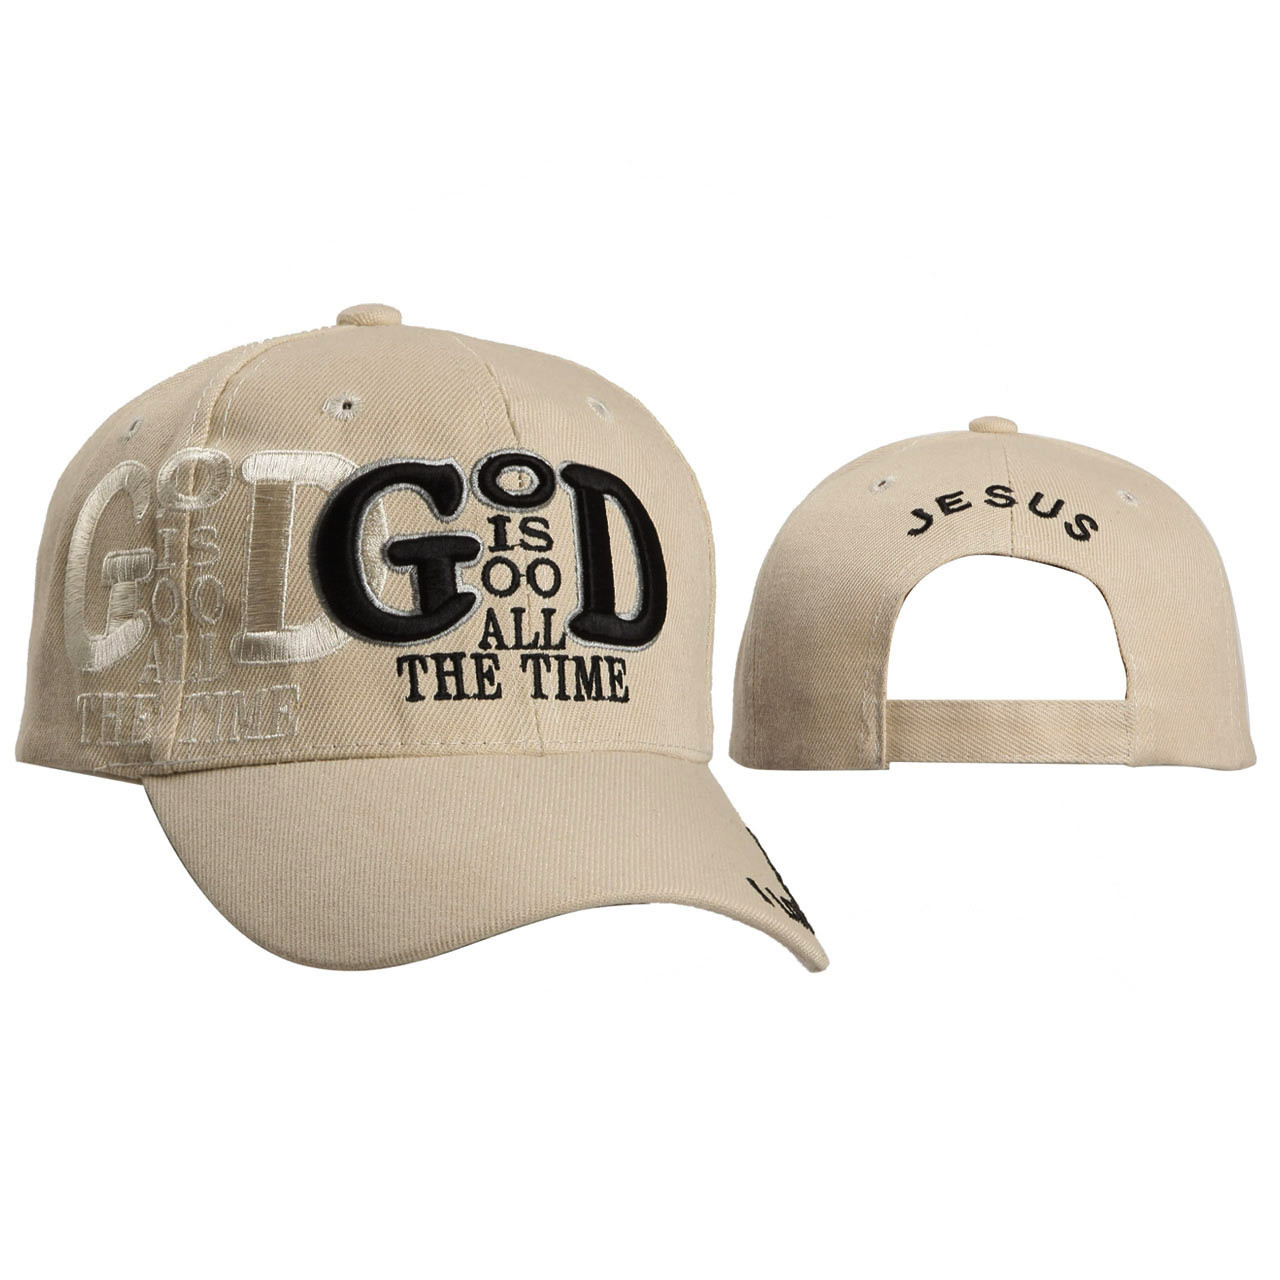 Wholesale Baseball Cap C106 (1 pc.) God Is Good All the time!